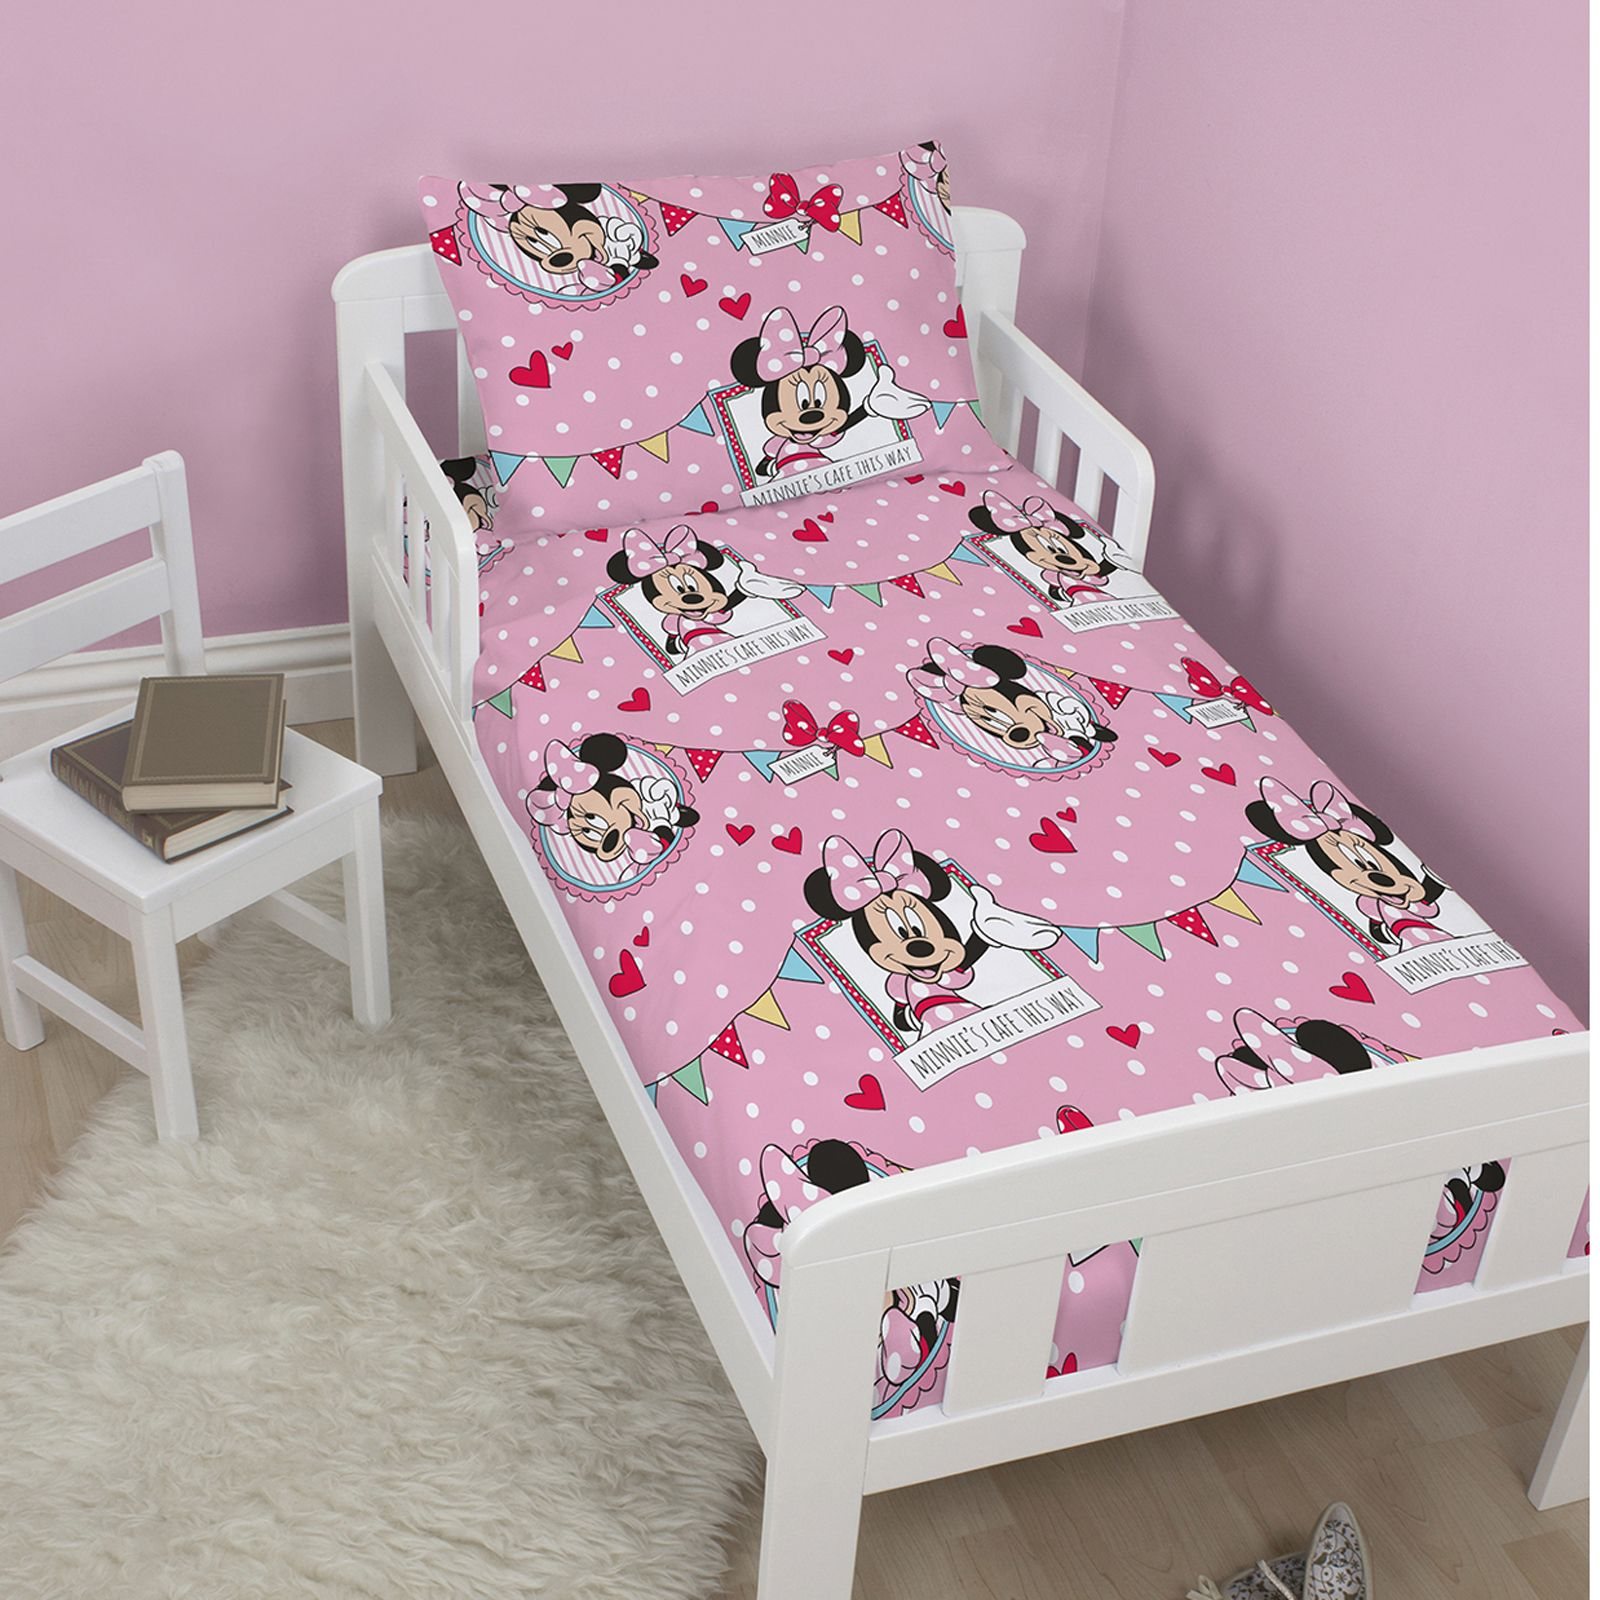 Minnie Mouse Toddler Bedroom Set: MINNIE MOUSE 'CAFE' JUNIOR COT BED DUVET COVER SET TODDLER